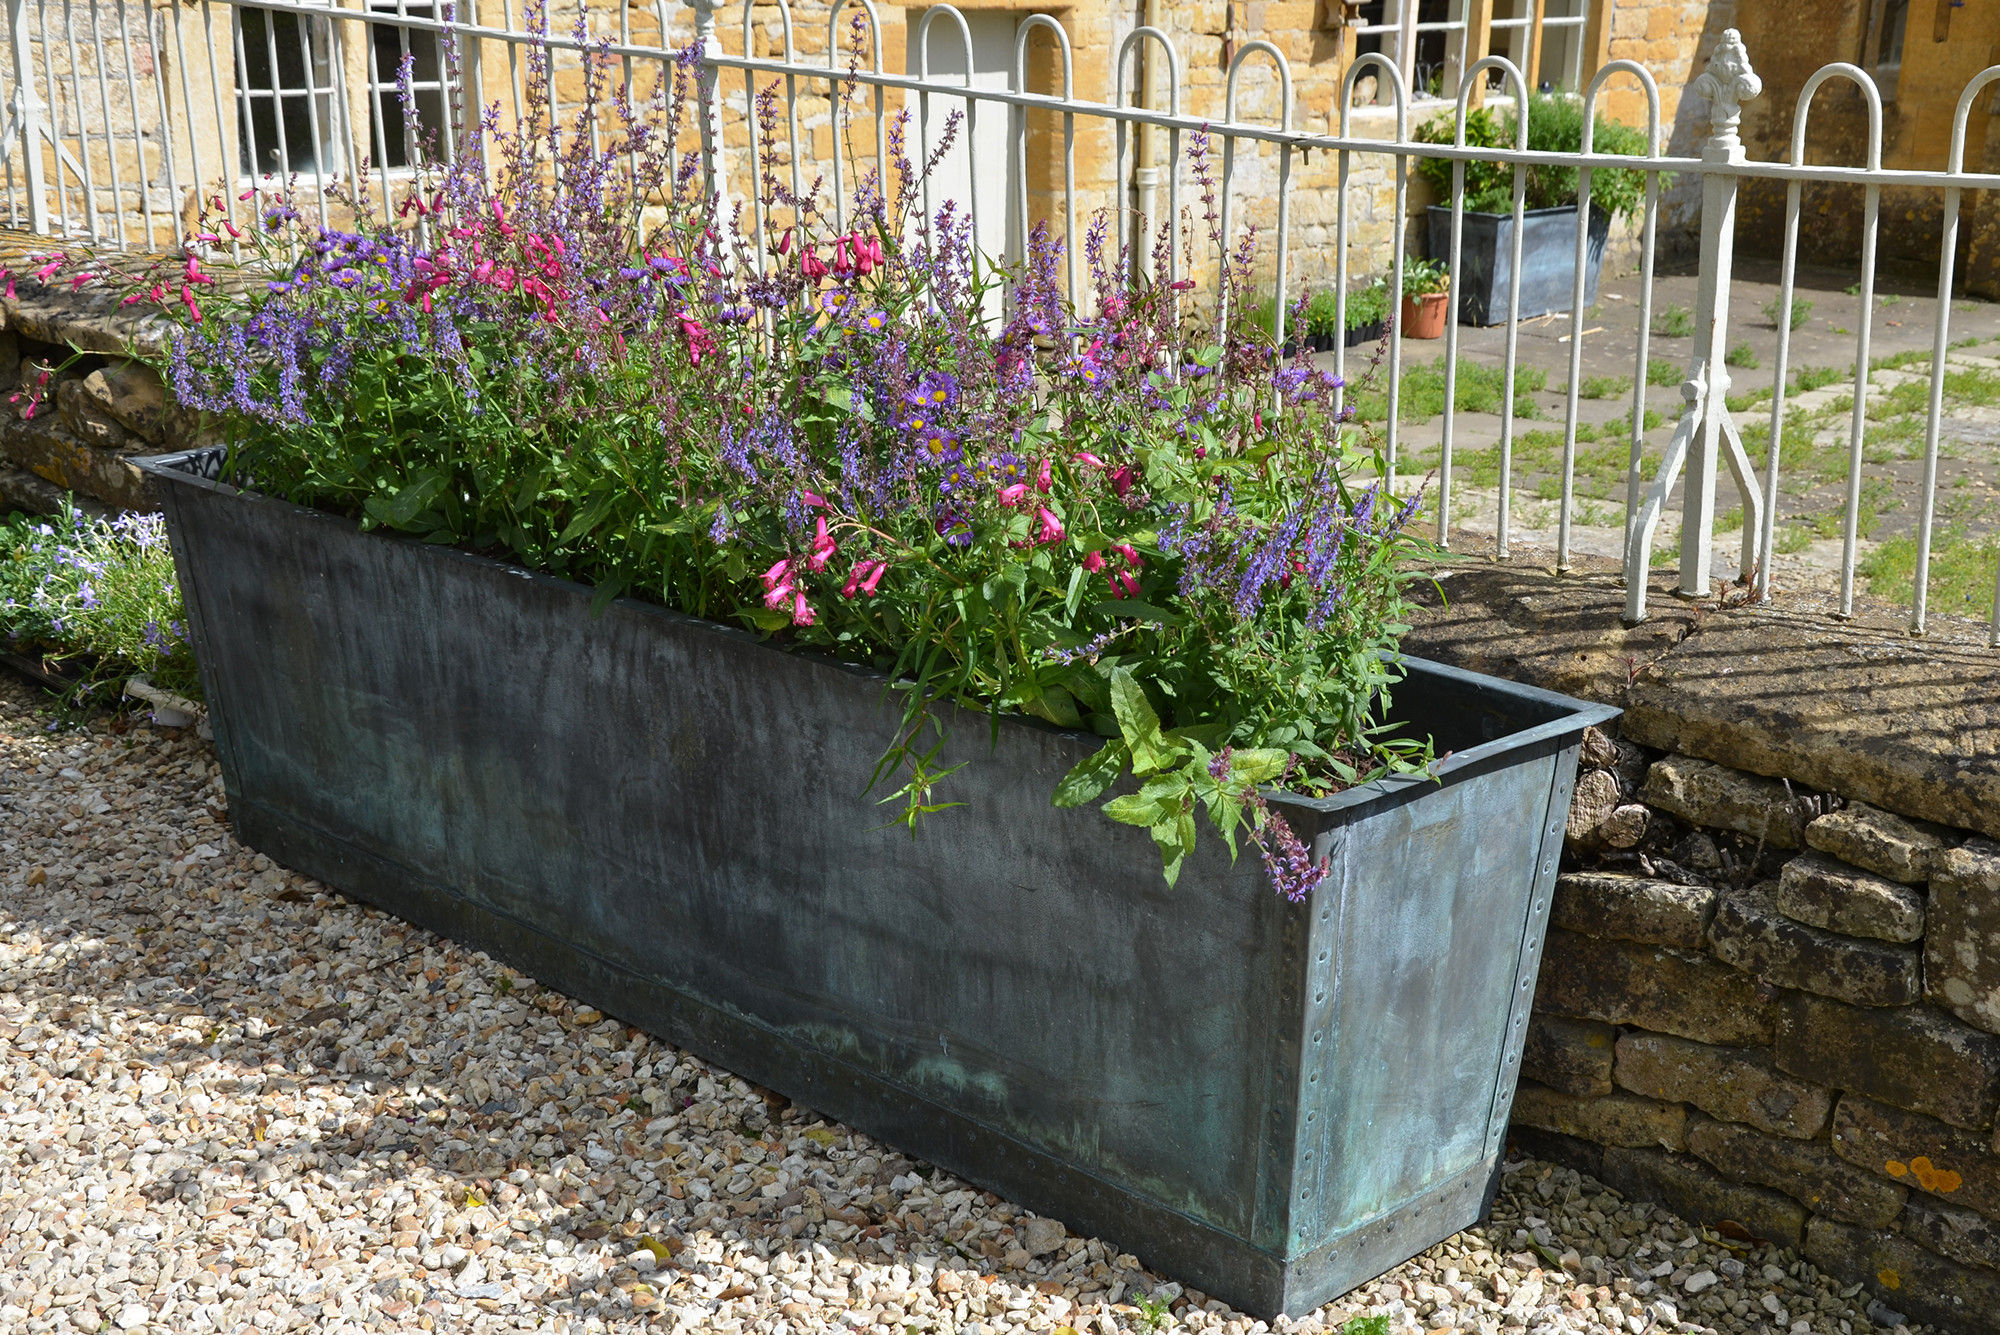 The Rectangular Copper Garden Planter - Large Narrow